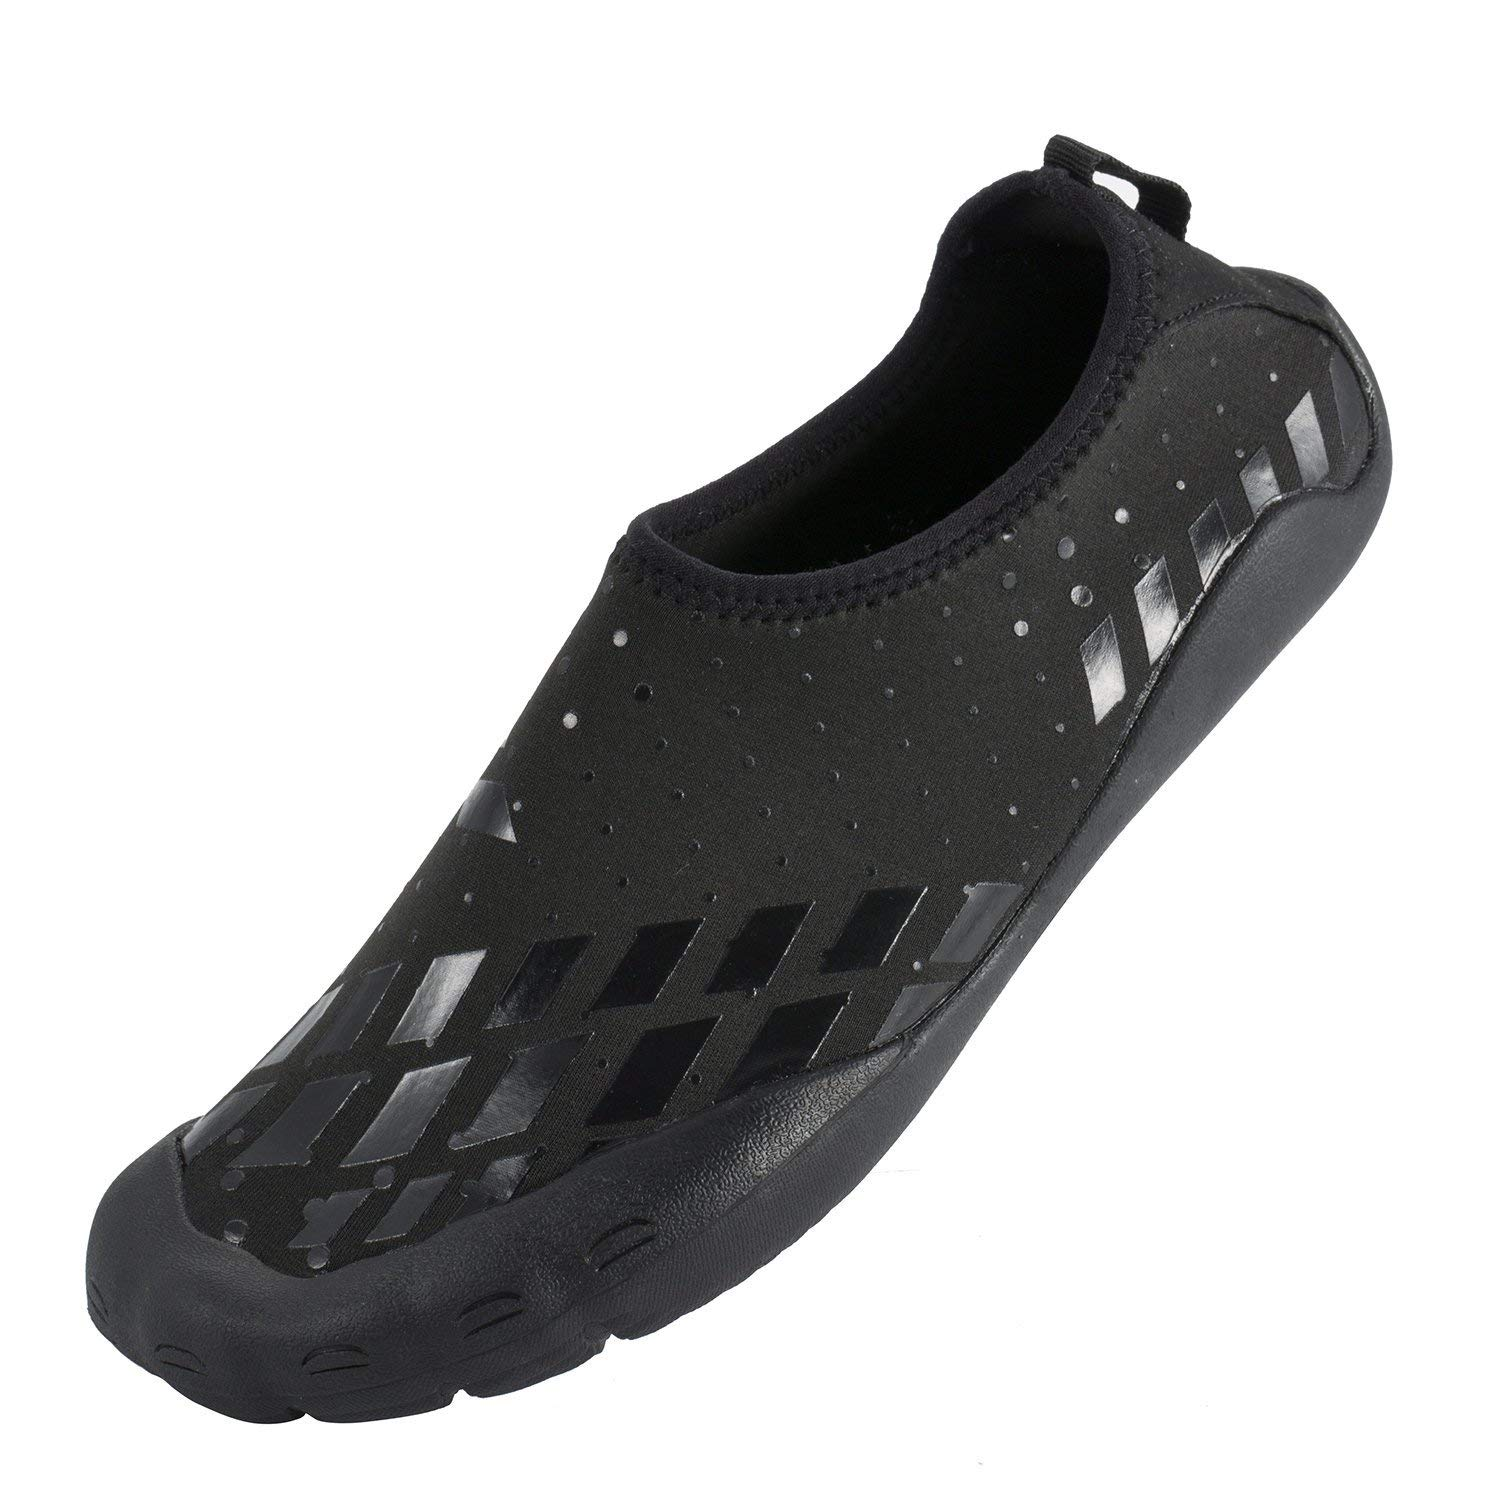 0654877ed3106d Get Quotations · Water Shoes Quick Dry Aqua Water Shoes Beach Walking  Swming Yoga Exercise